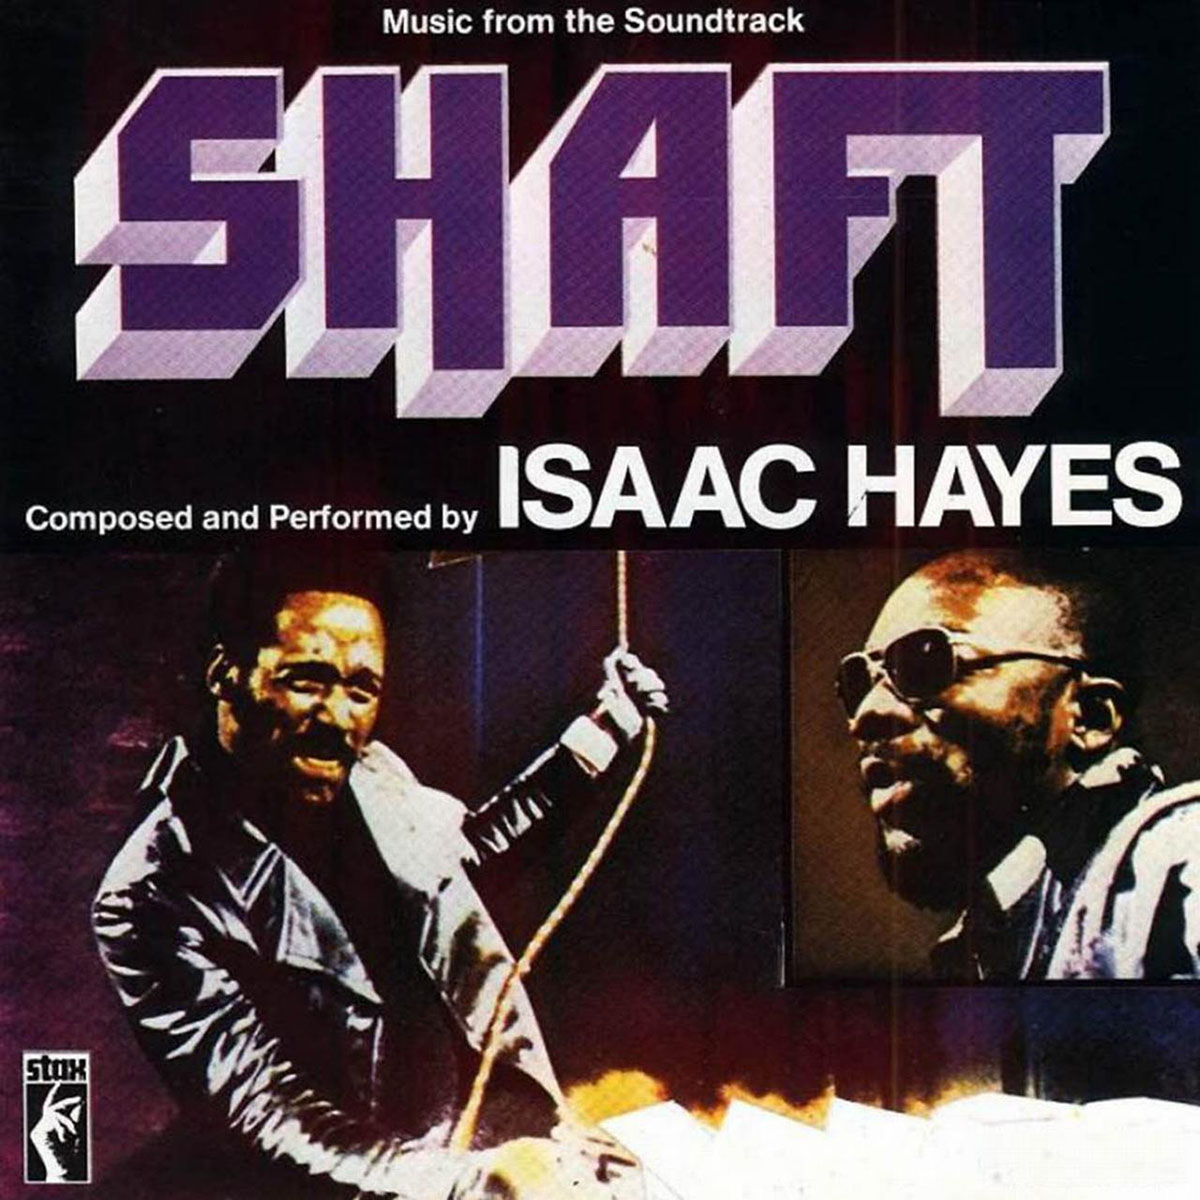 shaft - original cover